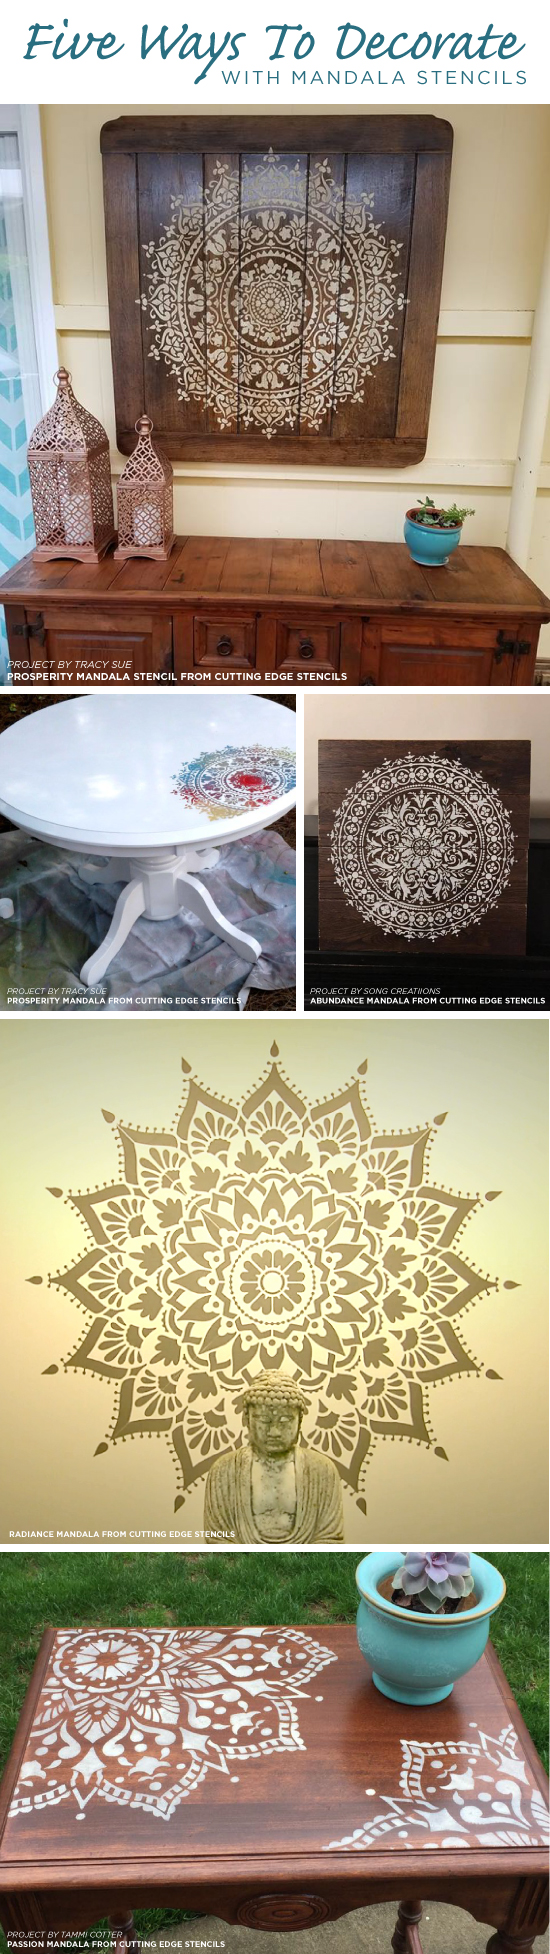 Cutting Edge Stencils shares five DIY decorating projects using Mandala Stencil patterns. http://www.cuttingedgestencils.com/mandala-stencils.html